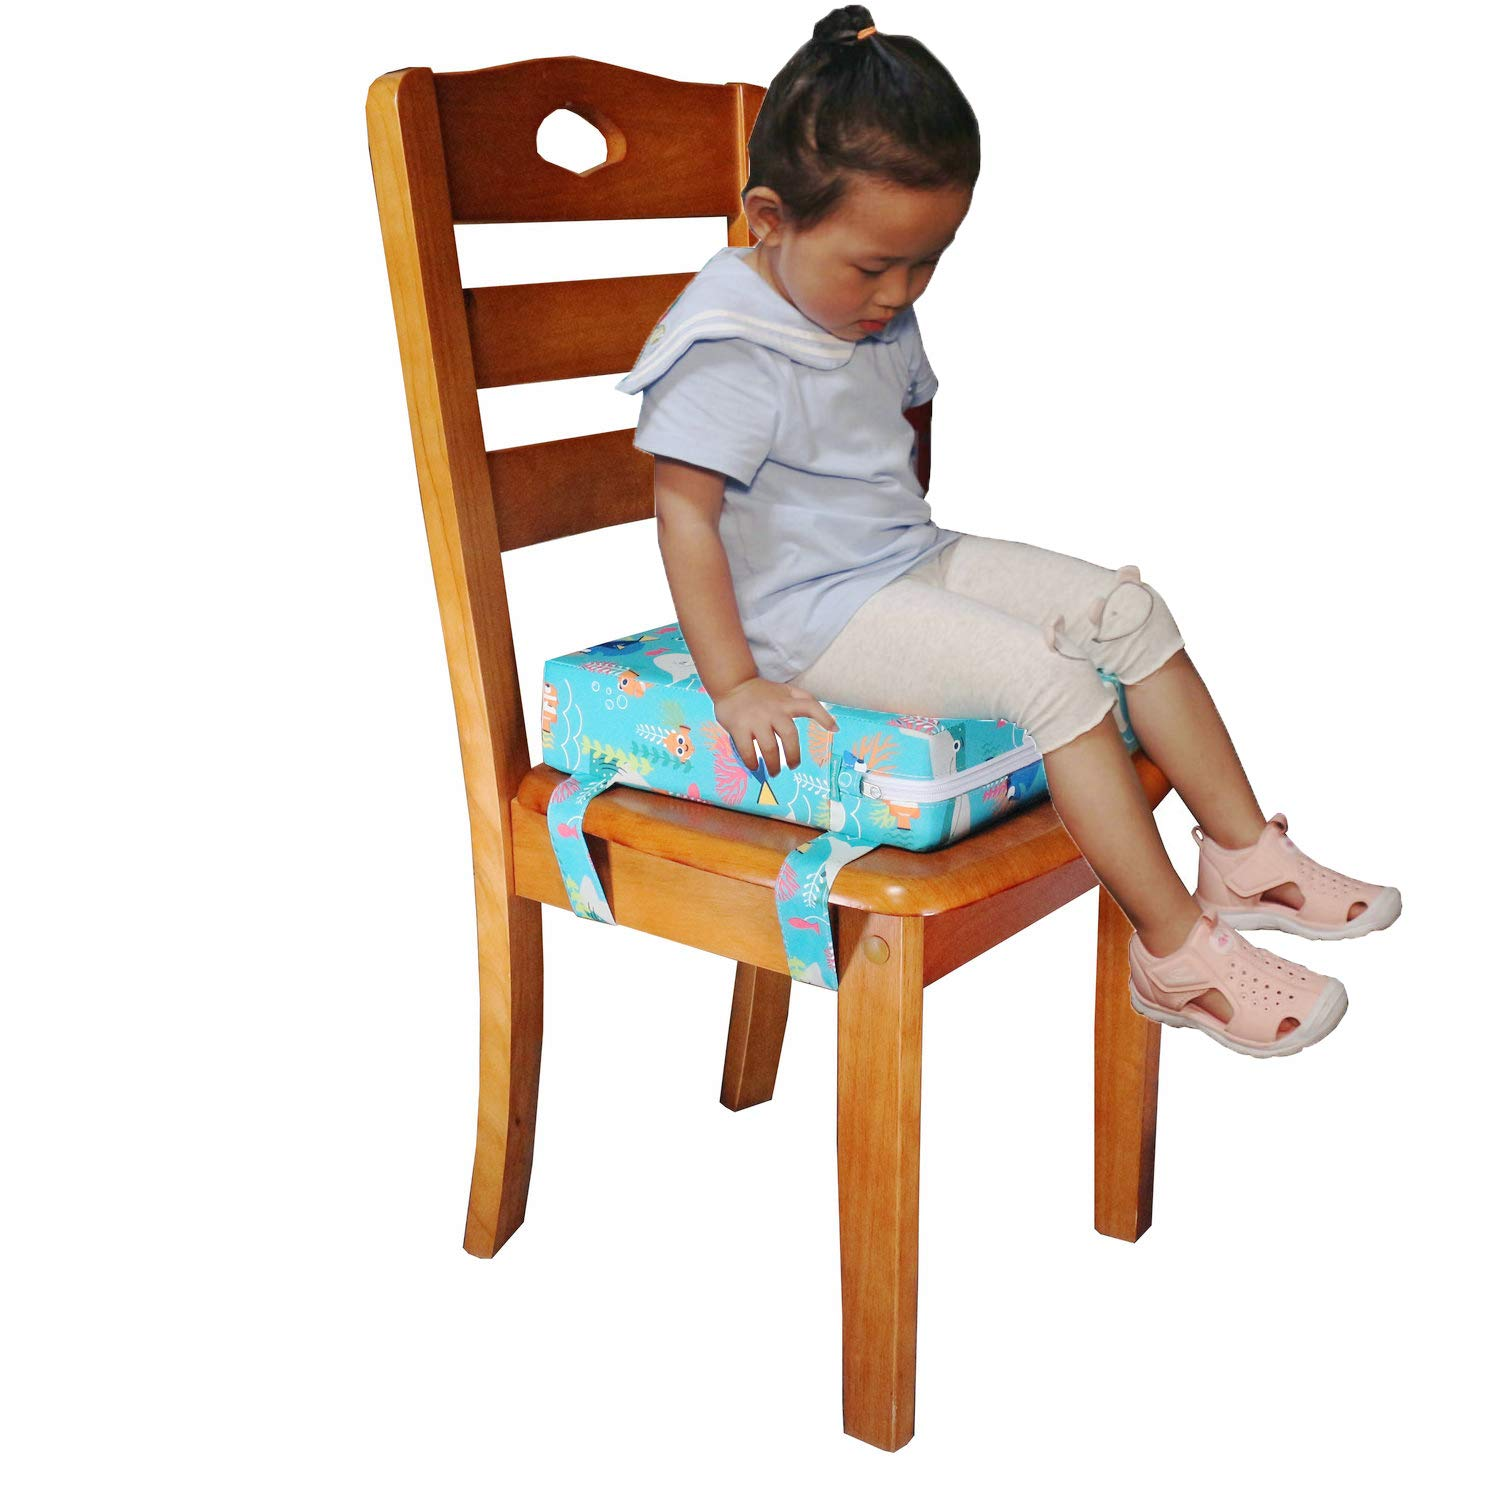 Dinosaur simpletome Chair Booster Seat Cushion Pad for Big Kids with 4 Safety Fixing Straps